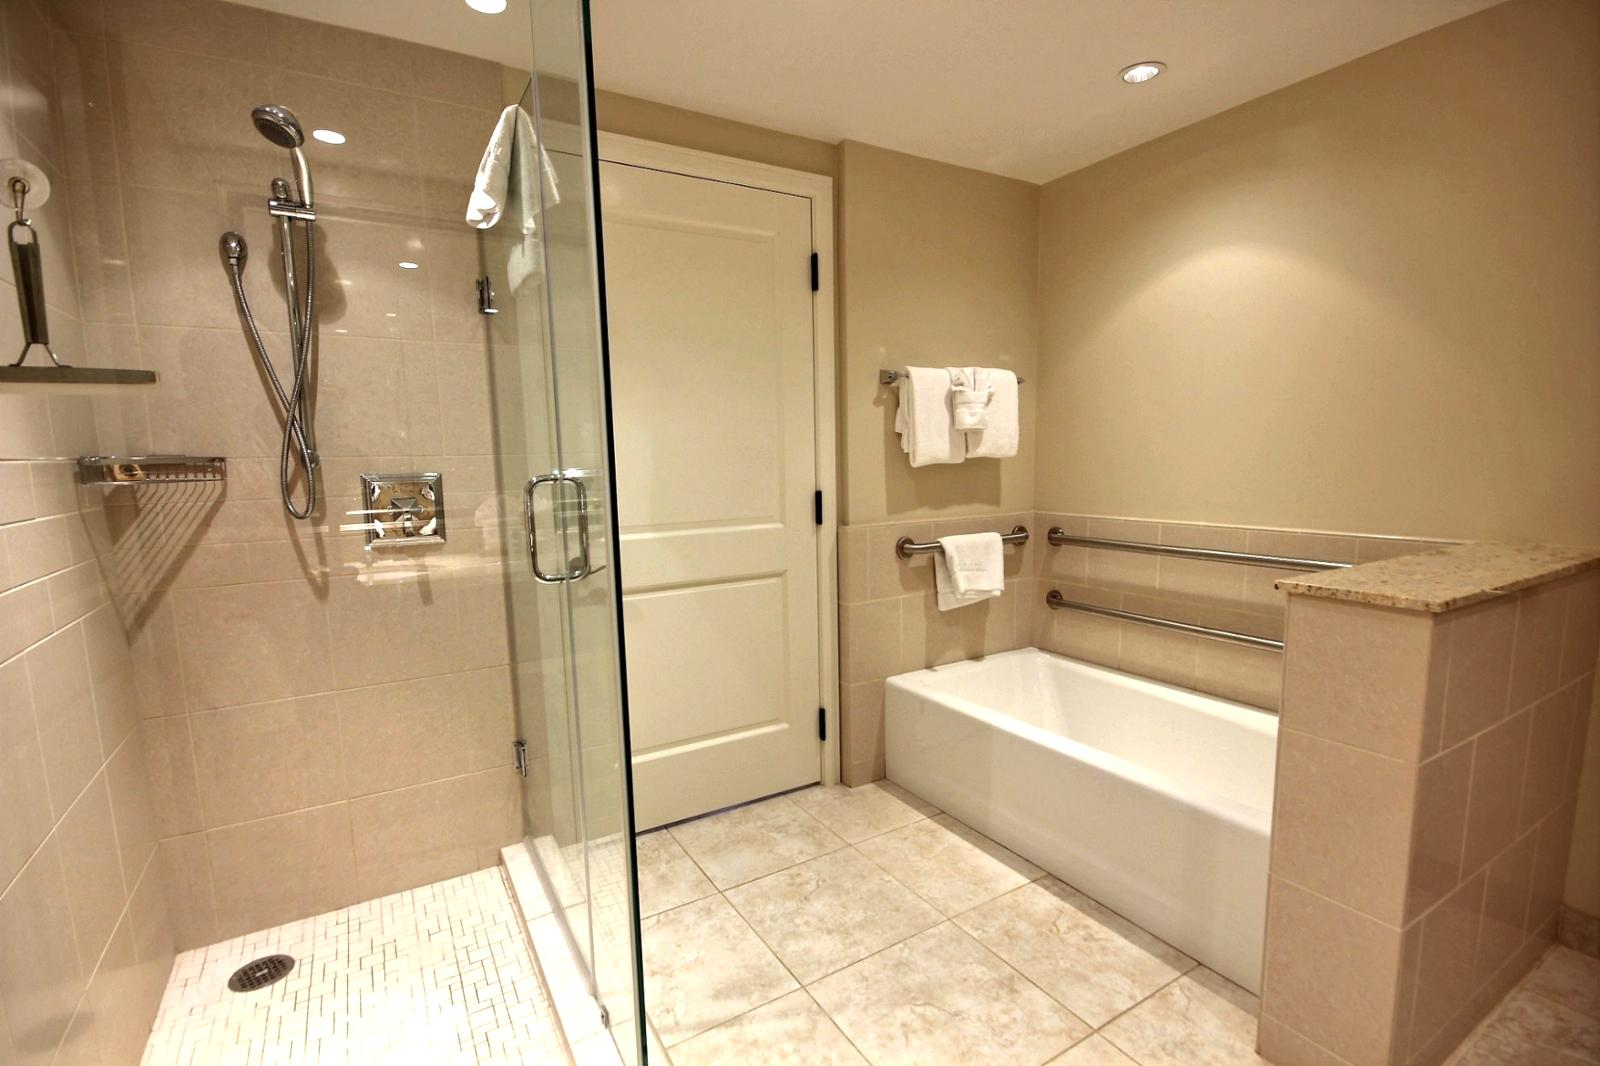 Separate bathtub and glassed in shower